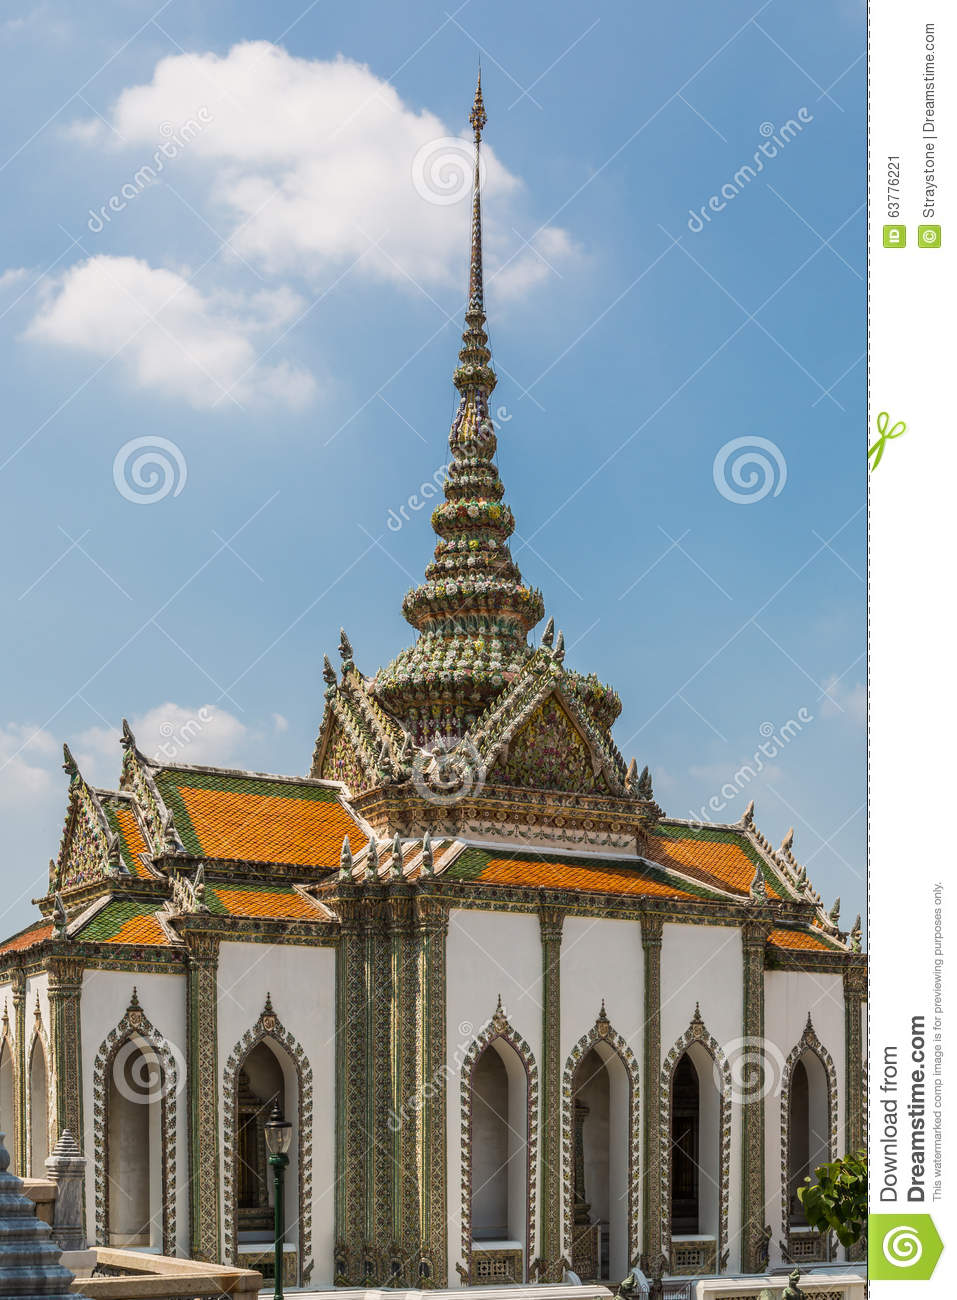 Phra Viharn Yod At Wat Phra Kaew Stock Photo - Image: 63776221